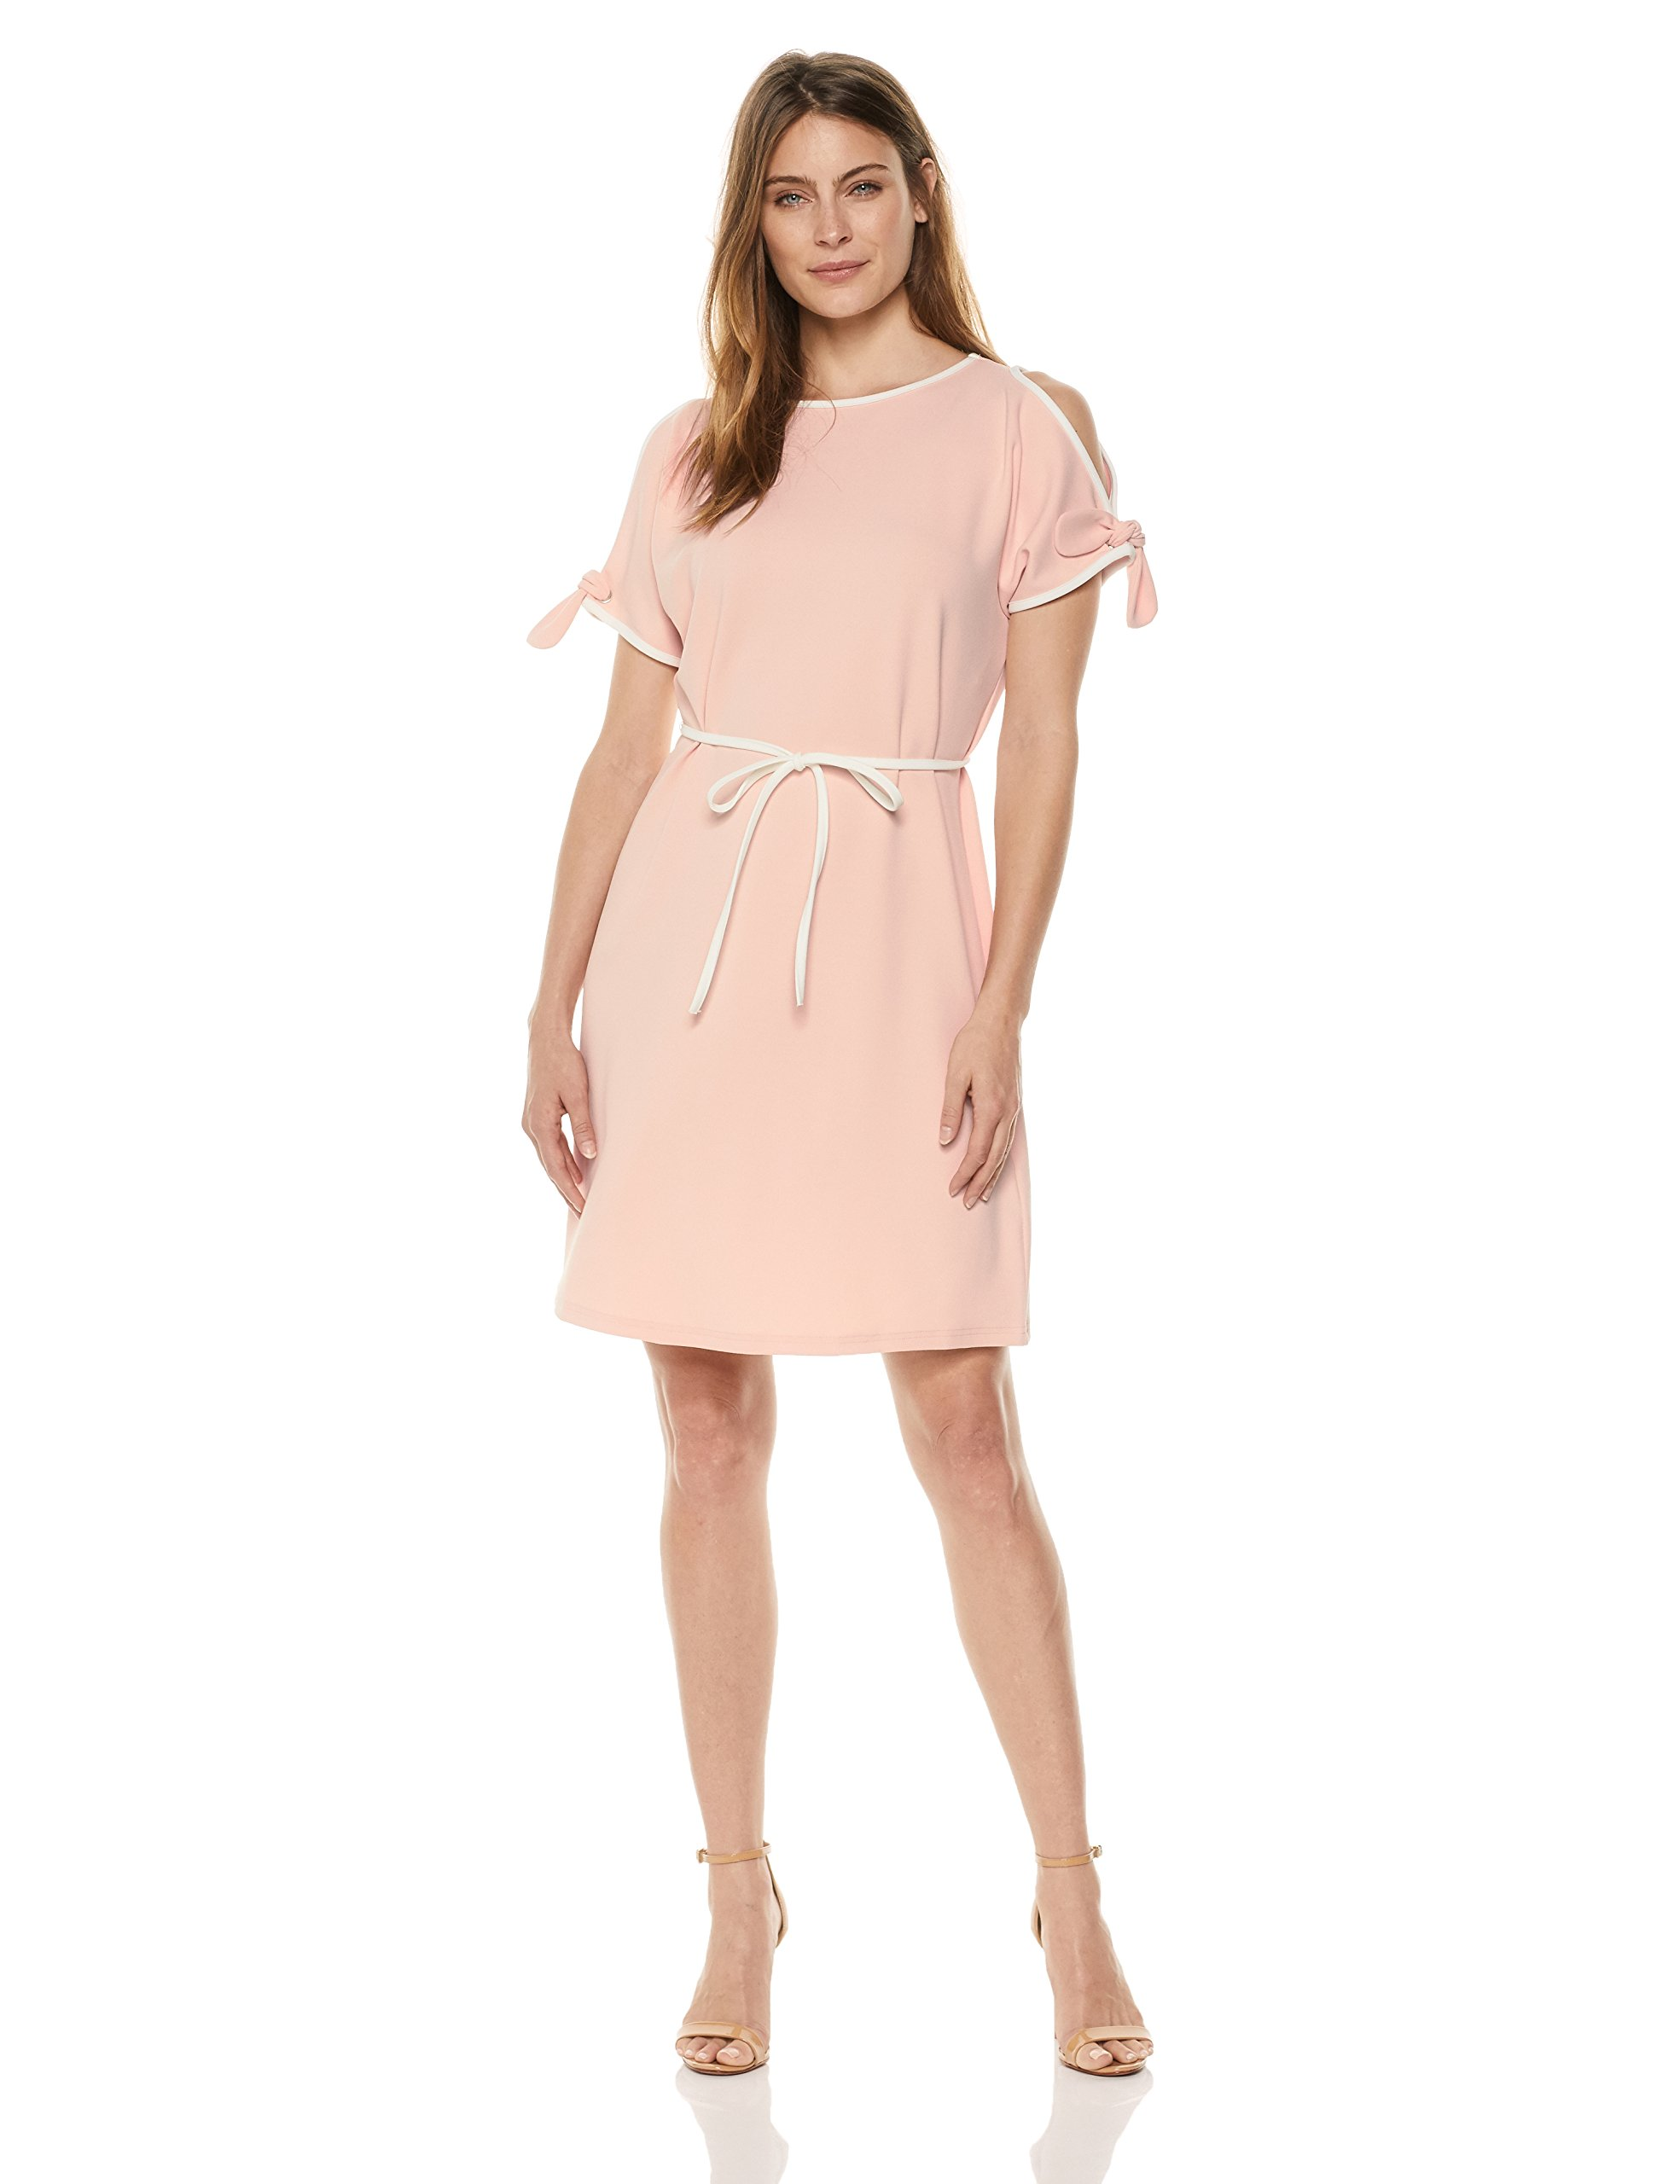 Available at Amazon: Sharagano Women's Cold Shoulder Belted Dress